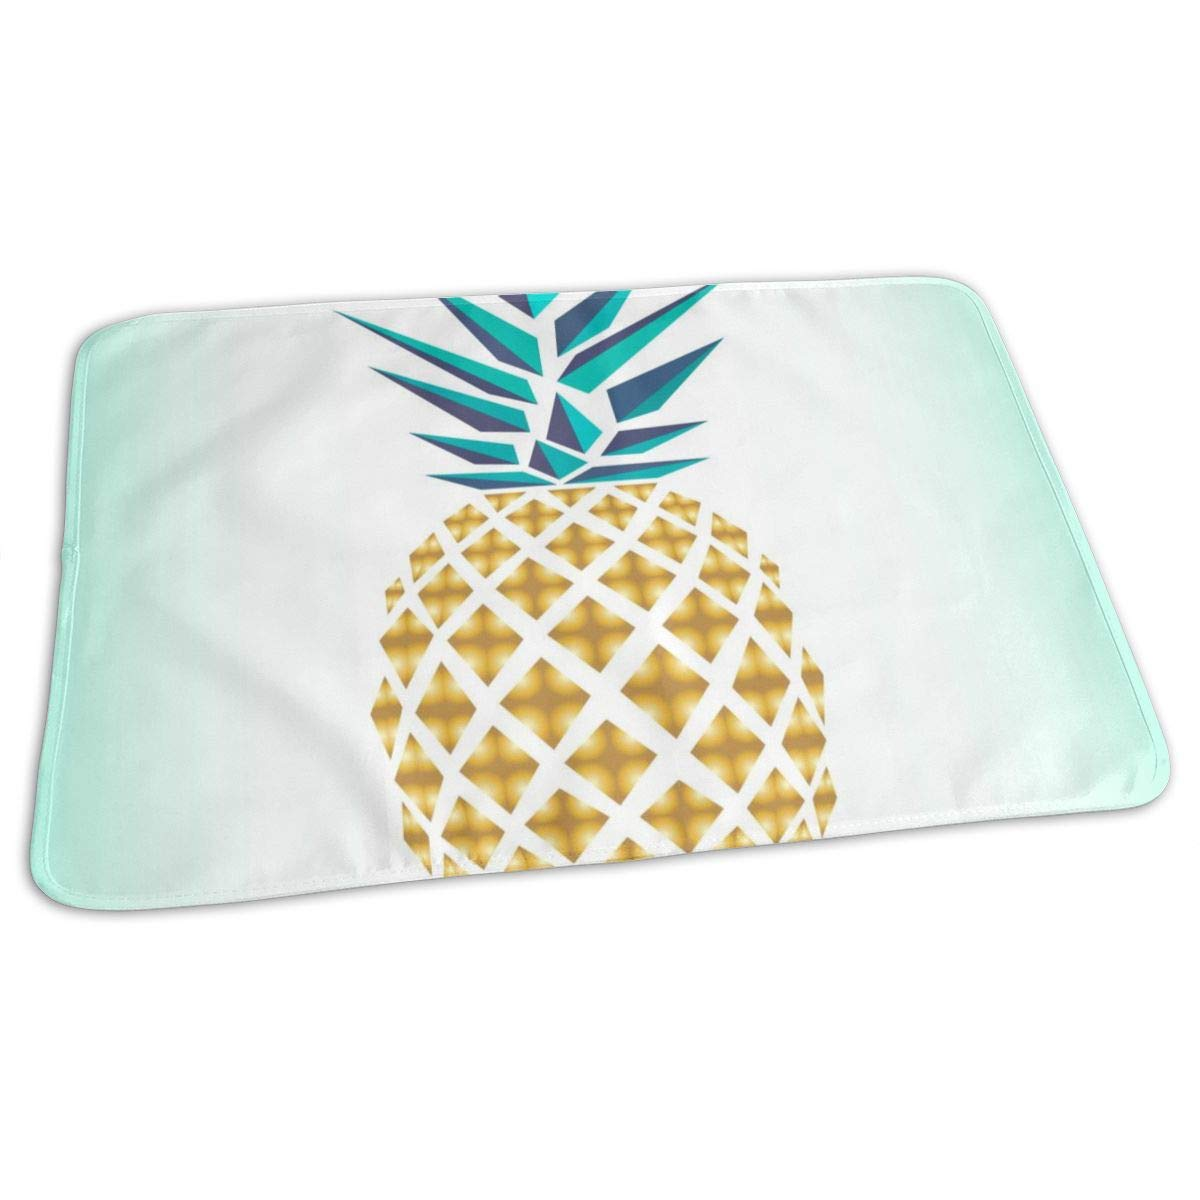 ZZguowuque Portable Changing Pad -Reusable Waterproof Baby Changing Pad(9.457.09 Inch) Green Pineapples